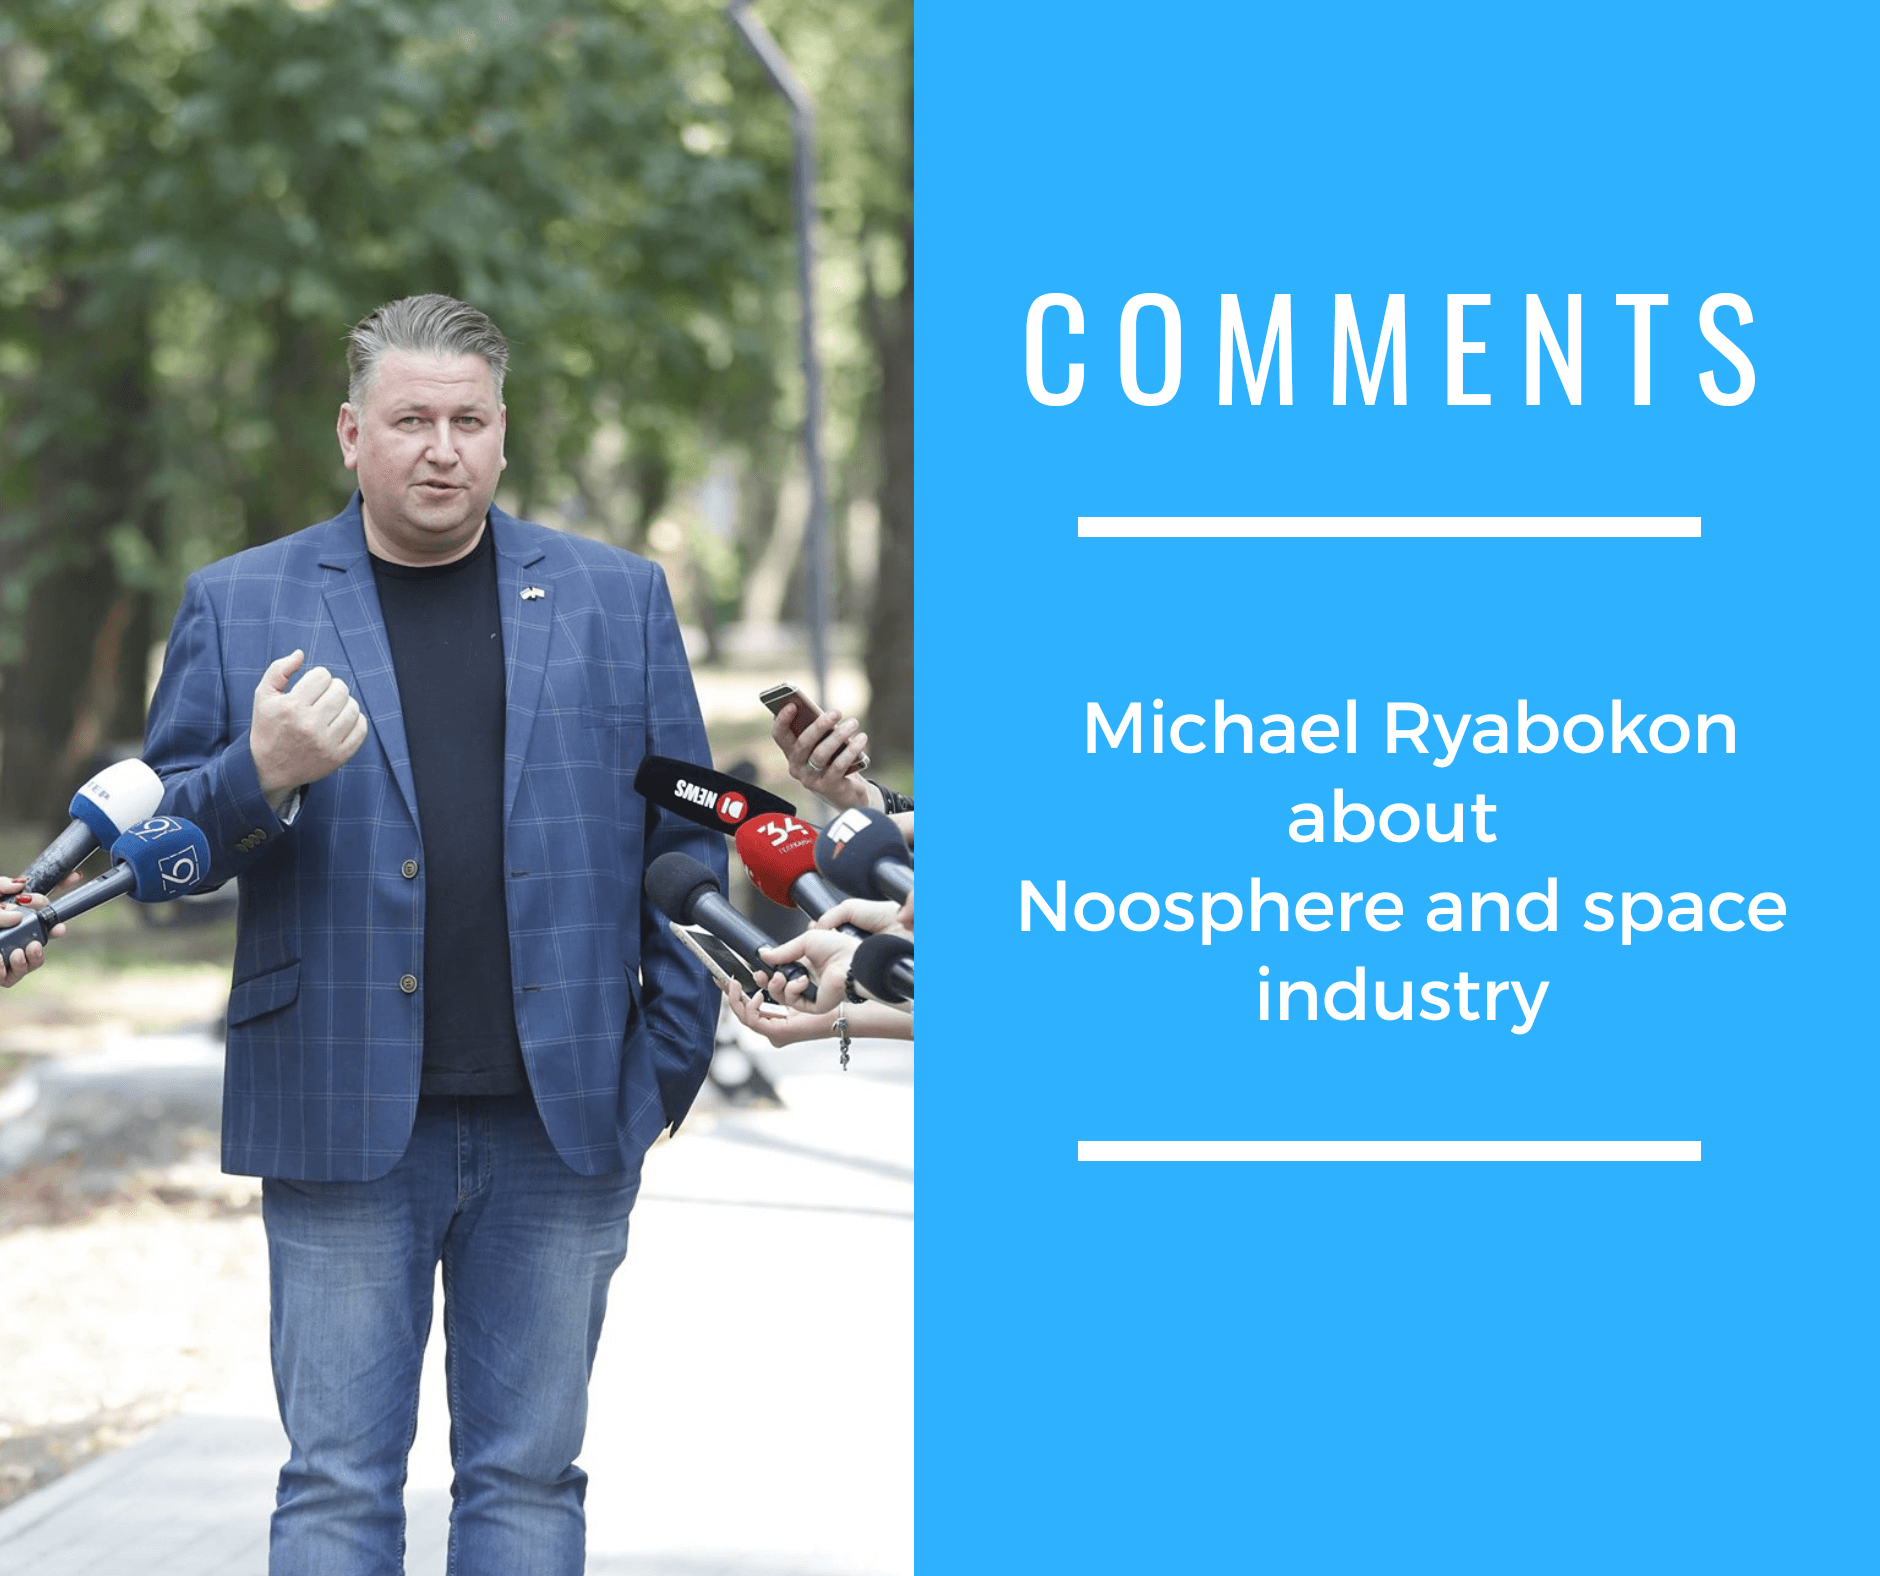 Michael Ryabokon about Noosphere and space industry